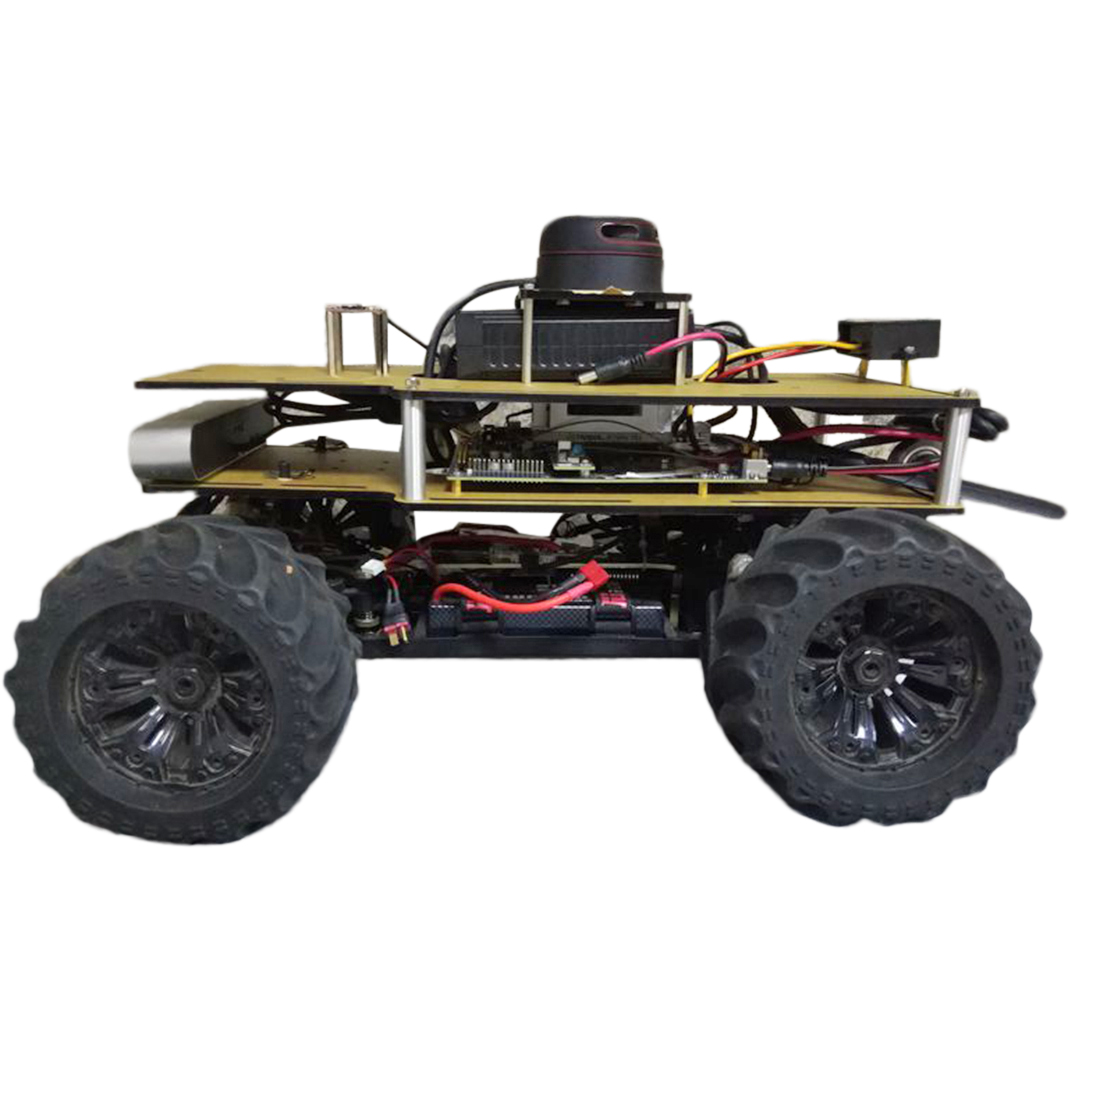 1/10 Programmable ROS Robot Ackerman Suspension Autopilot Ride Kit For Jetson TX2 - Outdoor Version